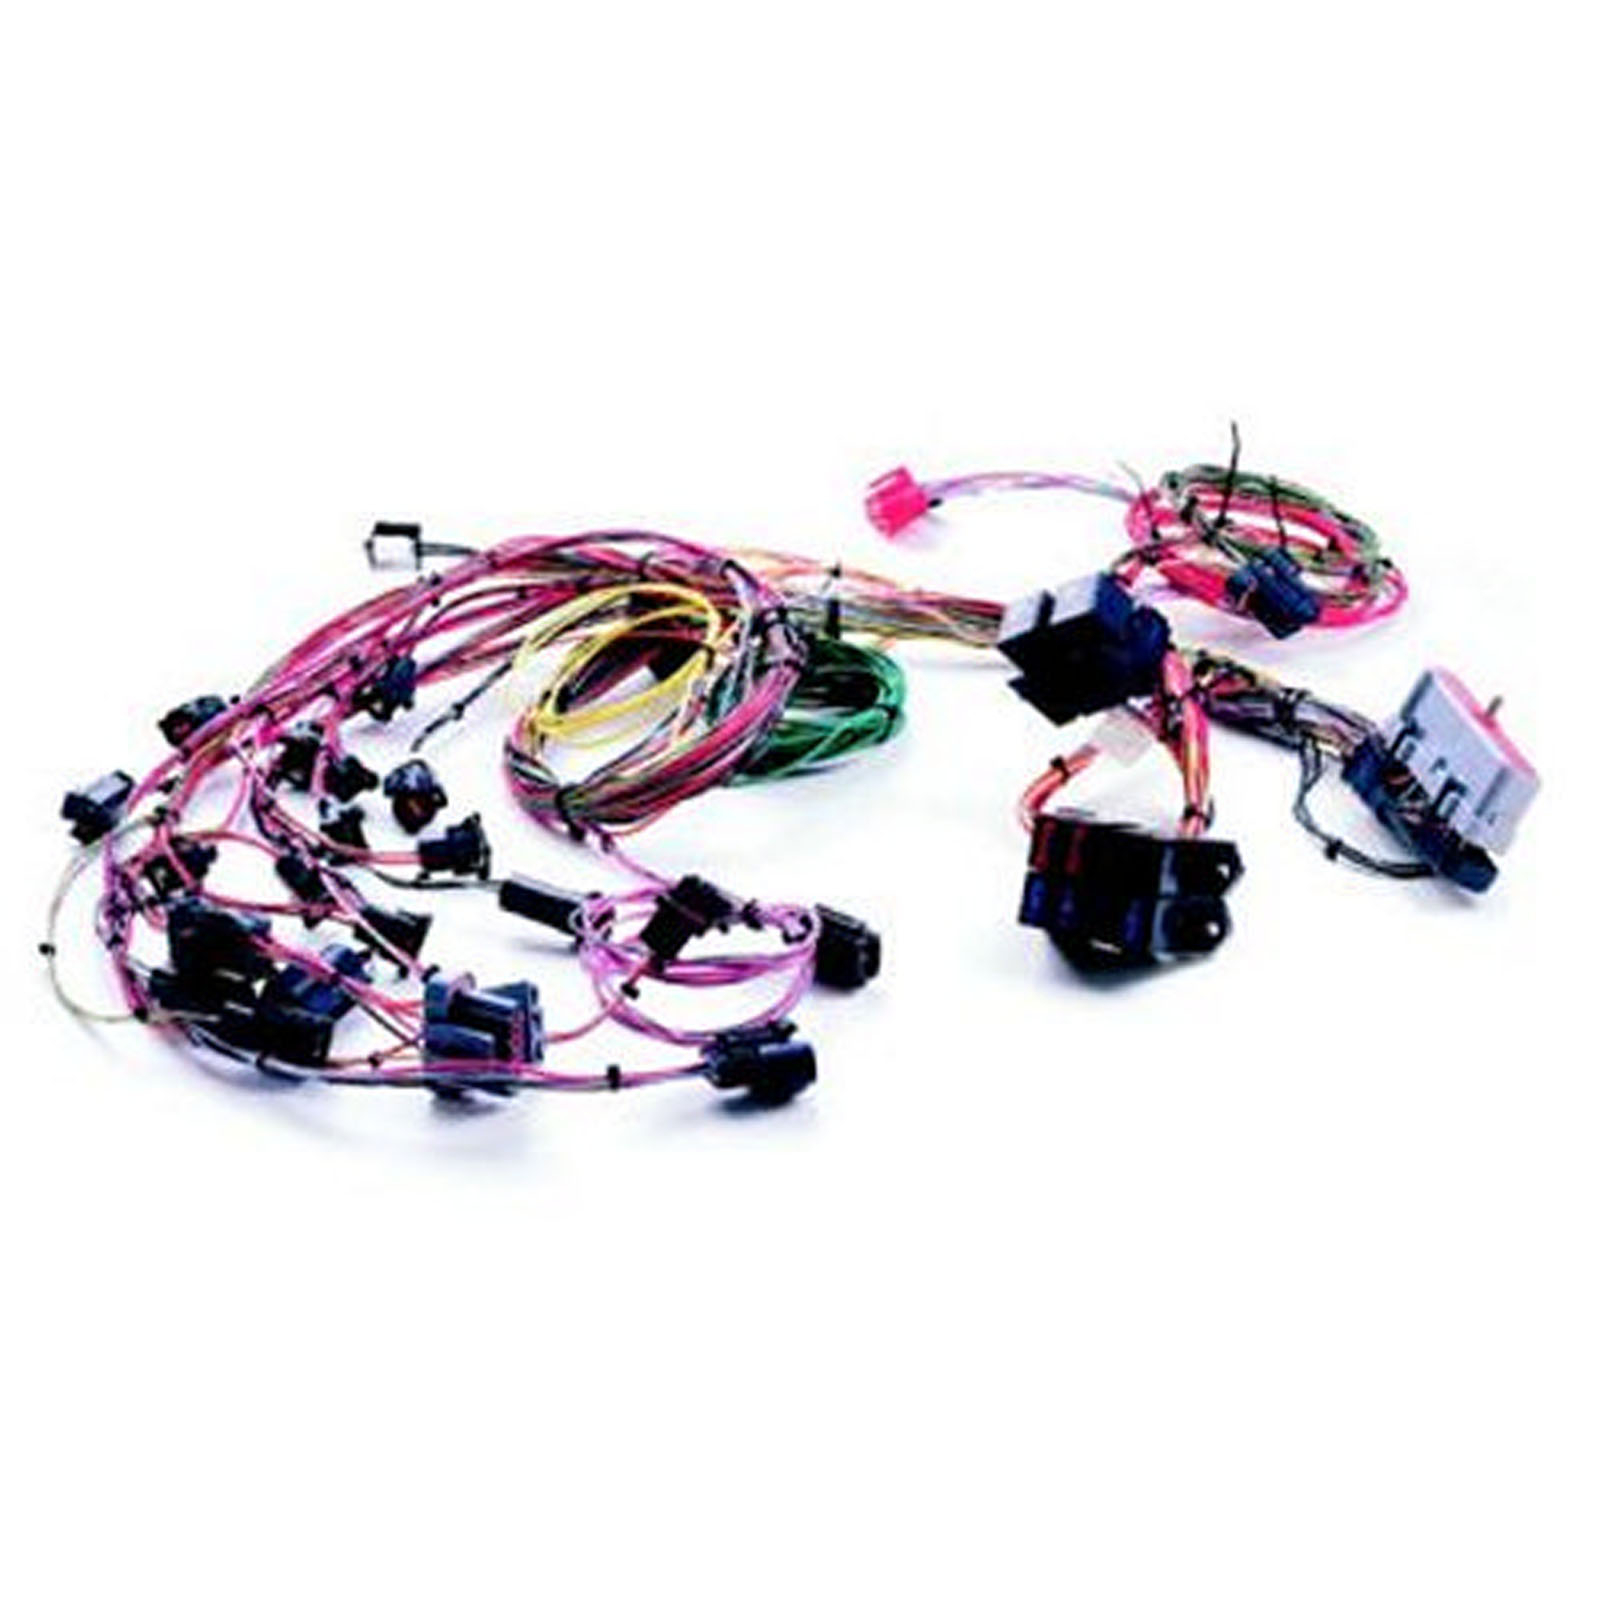 PAINLESS WIRING 60510 86-95 Ford 5.0L Mustang EFI Wiring Harness